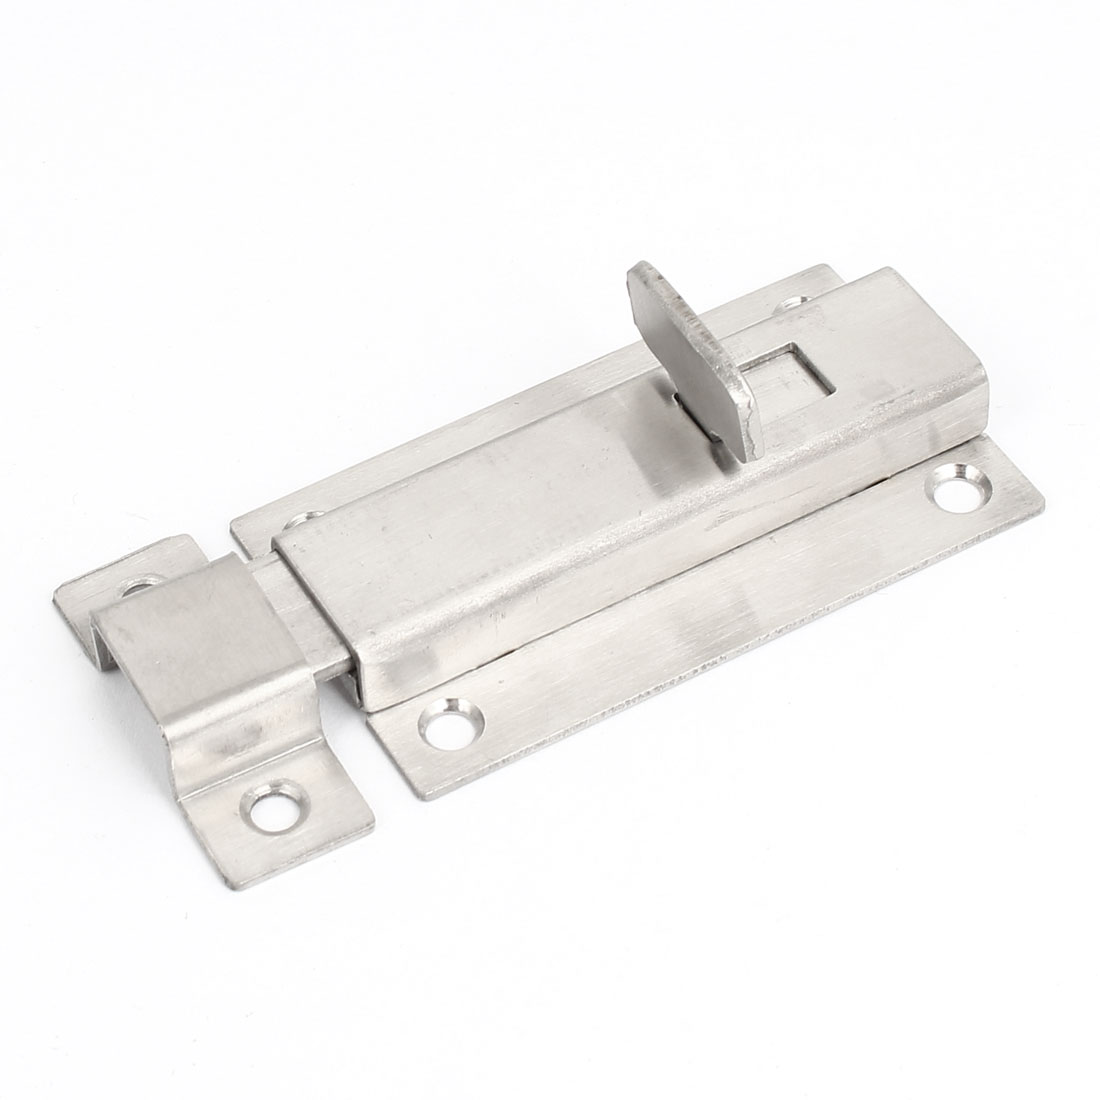 Home Window Cabint Doors Gates Stainless Steel Barrel Bolt Latch